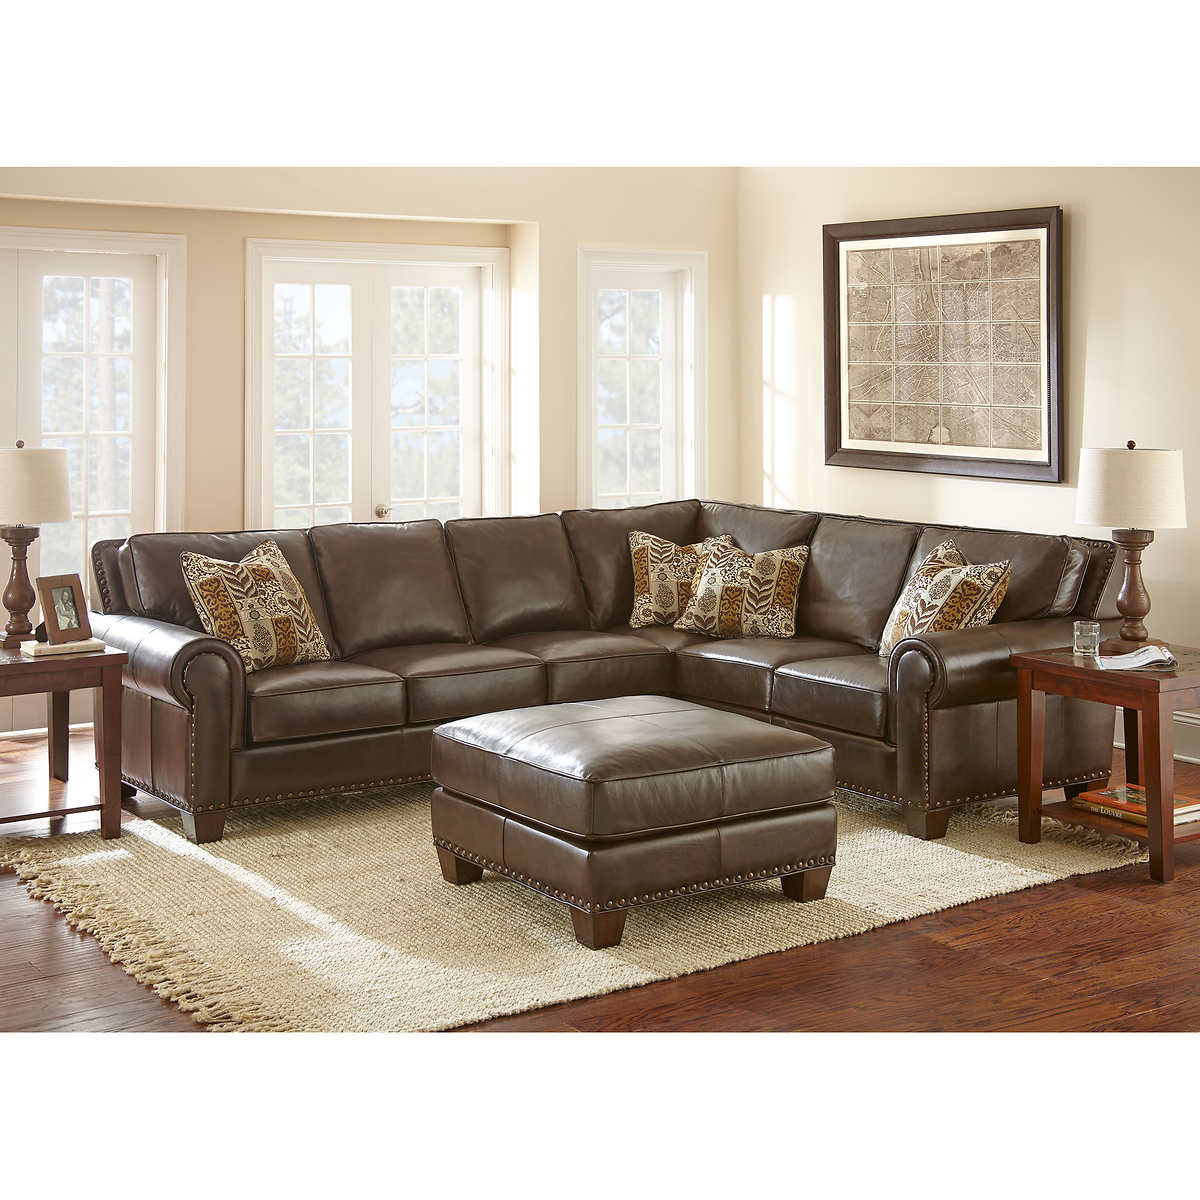 Gavin Top Grain Leather Sectional and Ottoman - Leather Sofas & Sectionals Costco